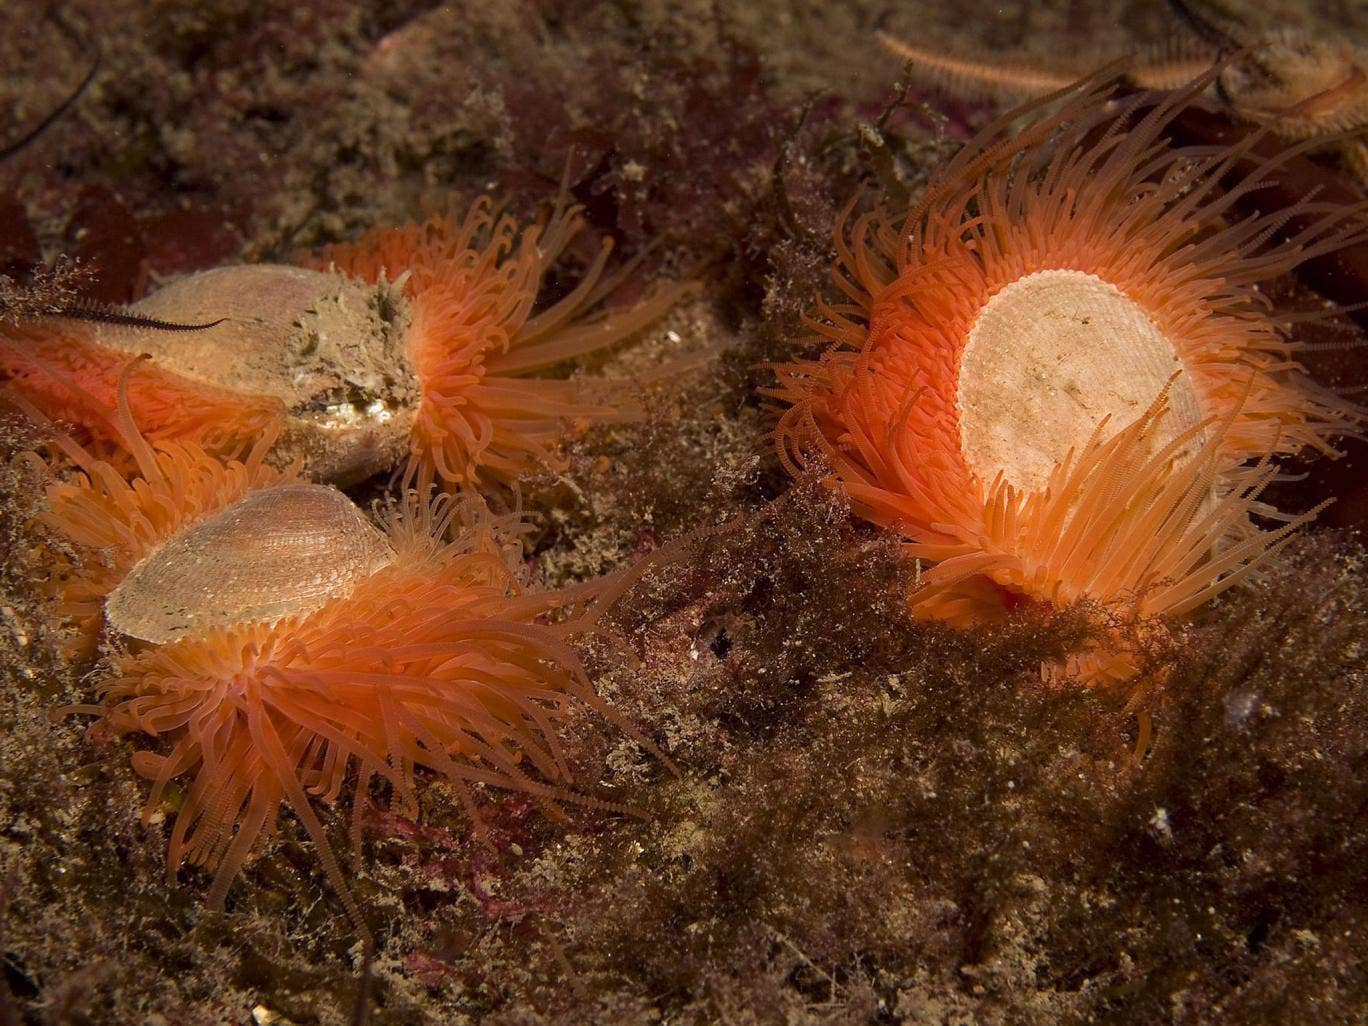 The discovery of a large shellfish reef on the west coast of the UK could be the biggest find of its kind in the world, experts believe